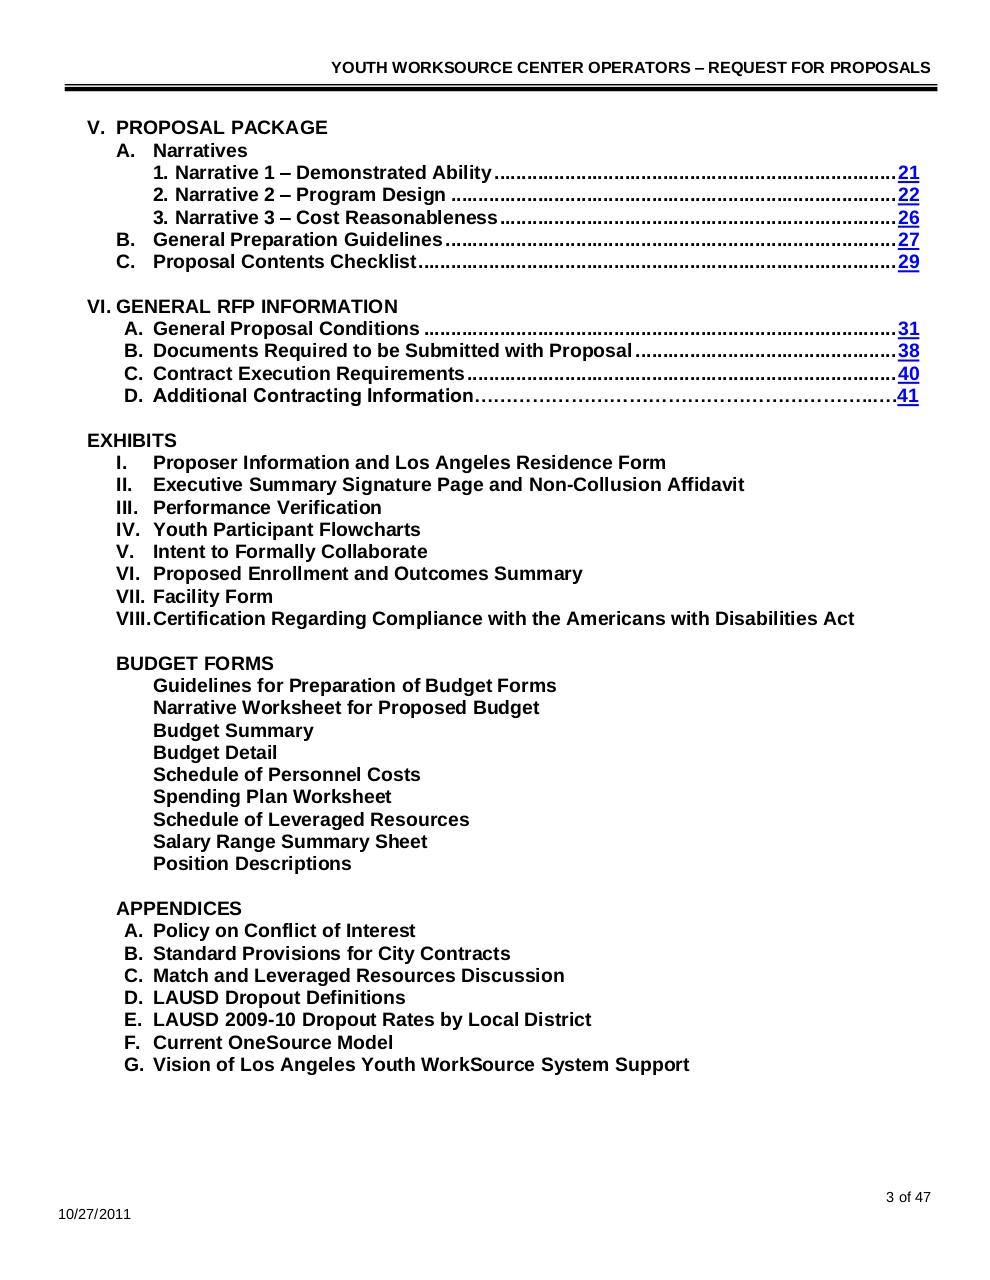 LosAngeles_YouthWorkSourceCenterOperators_RFP_Oct2011.pdf - page 3/47